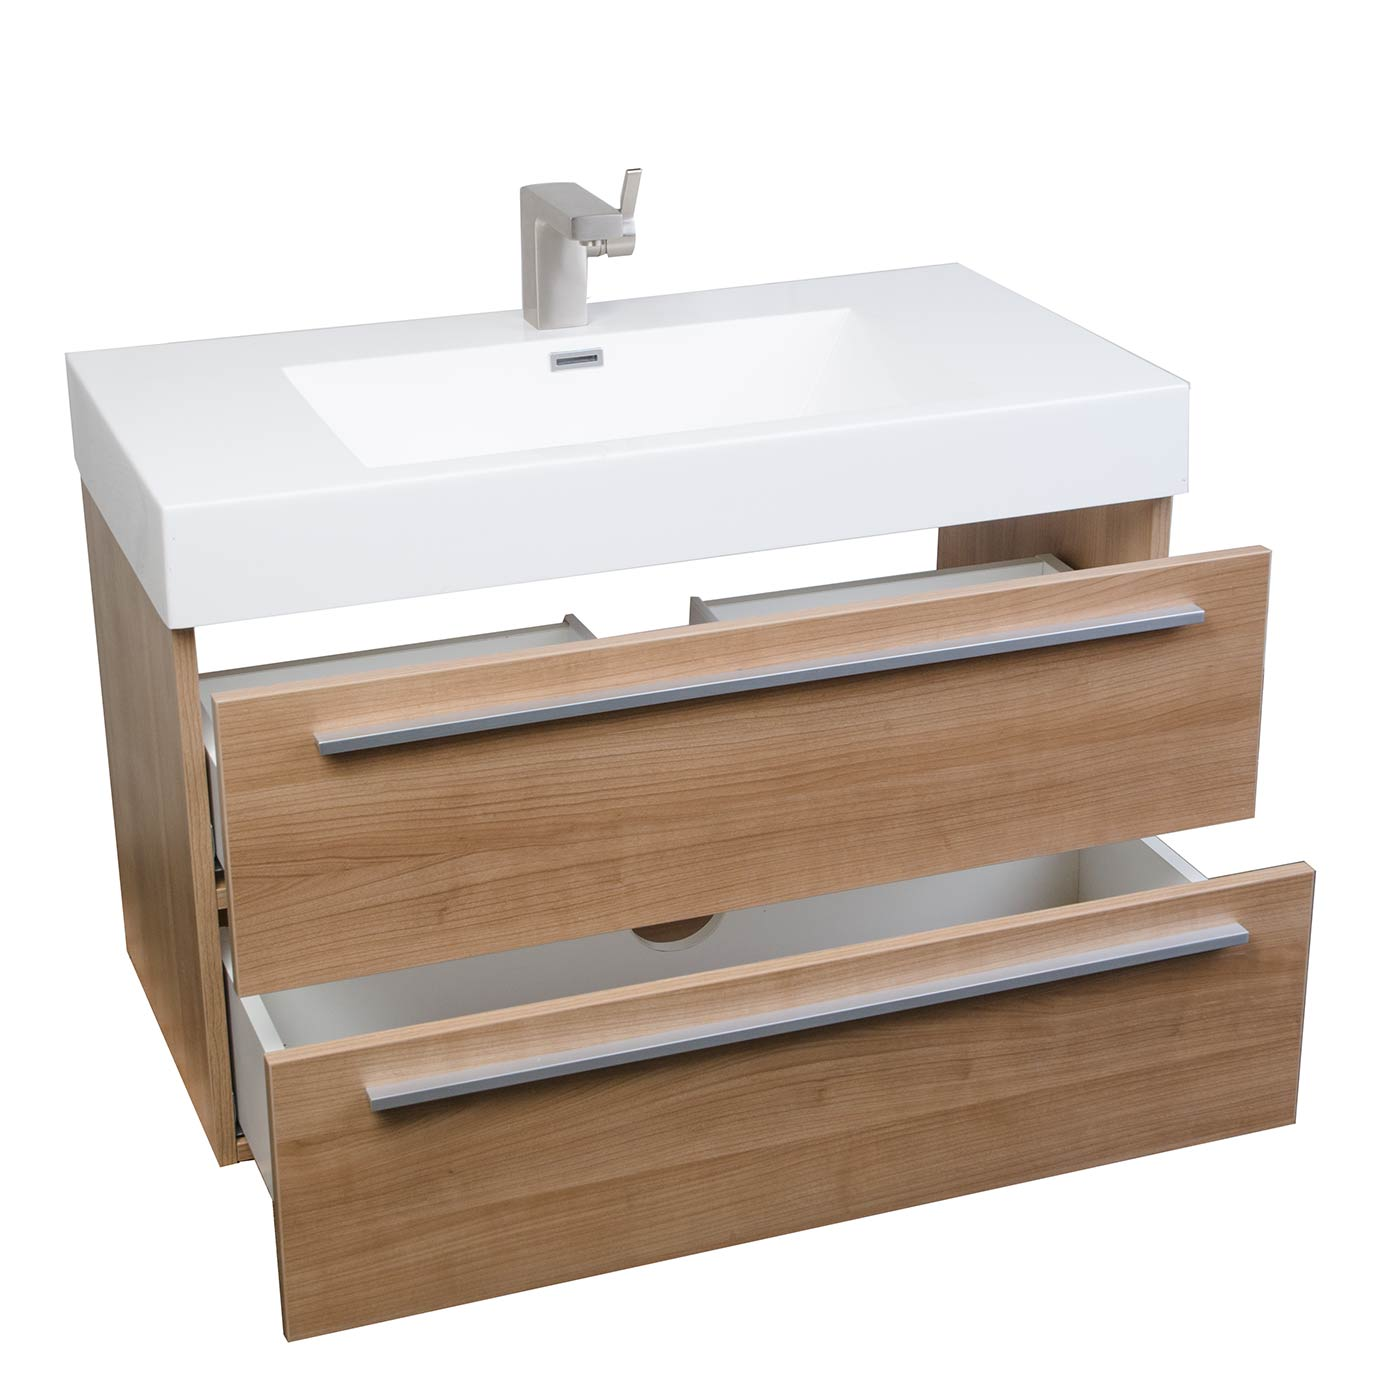 Buy 31.5 Inch Wall-Mount Contemporary Bathroom Vanity in Light Cherry TN-M800-LC on Conceptbaths.com